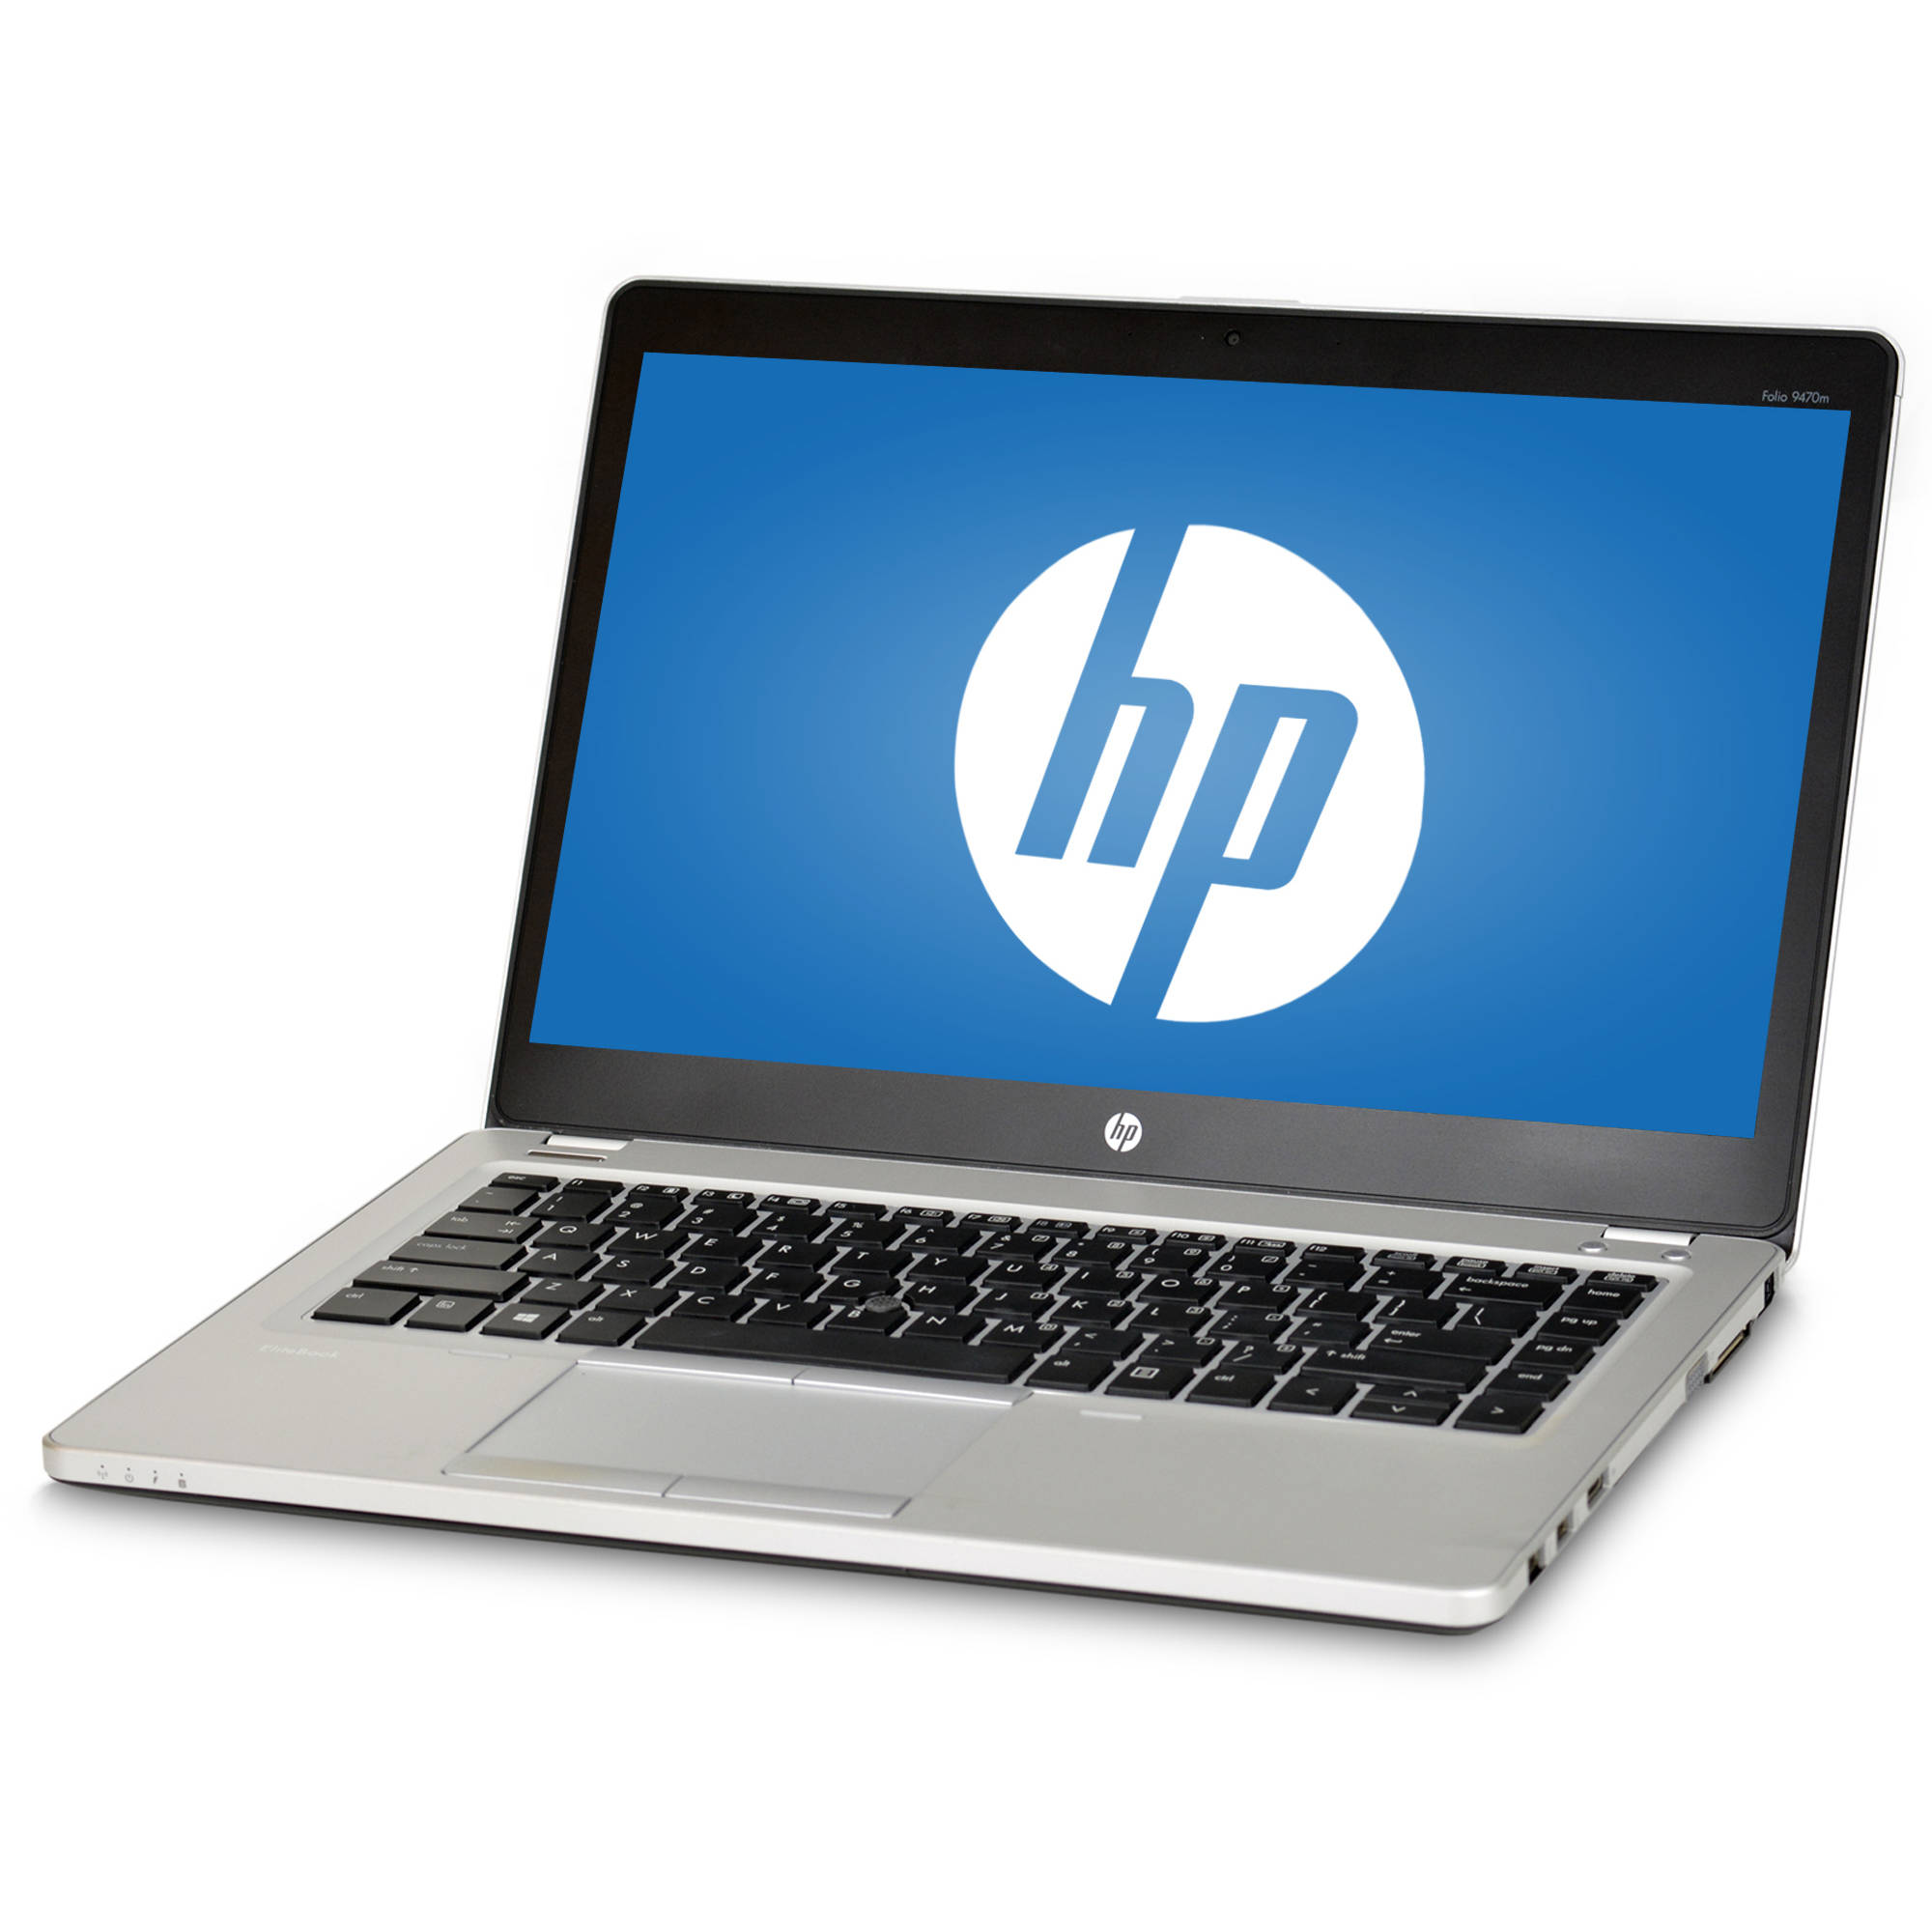 "Factory Refurbished HP Folio 9470M 14"" Laptop, Windows 10 Pro, Intel Core i5-3437U Processor, 8GB RAM, 320GB Hard Drive"